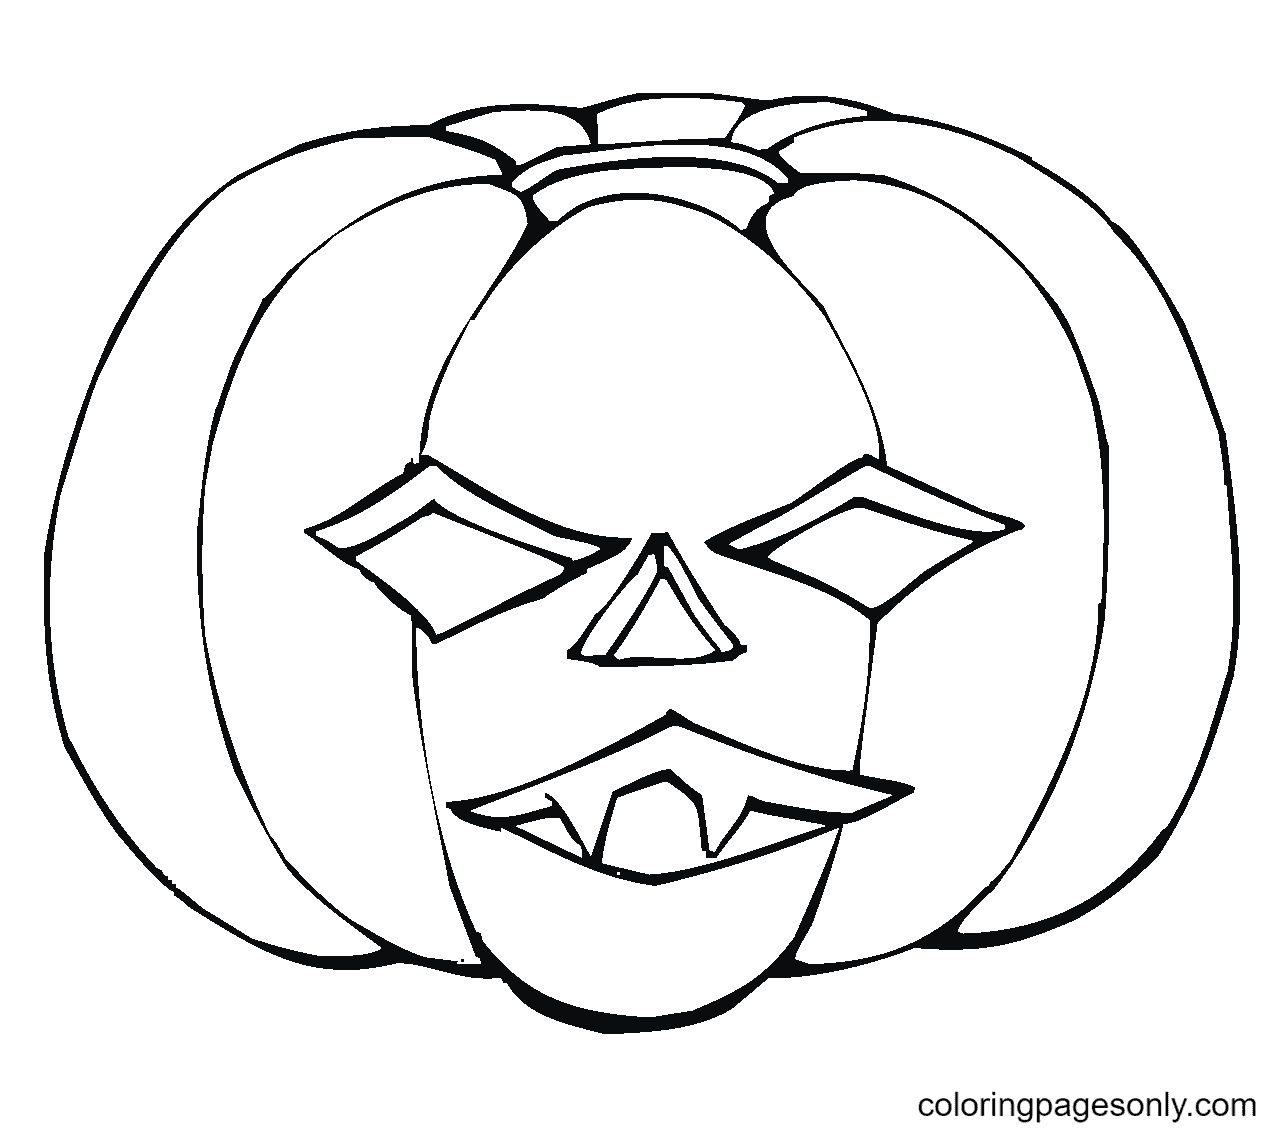 Scary Pumpkin Halloween Coloring Page